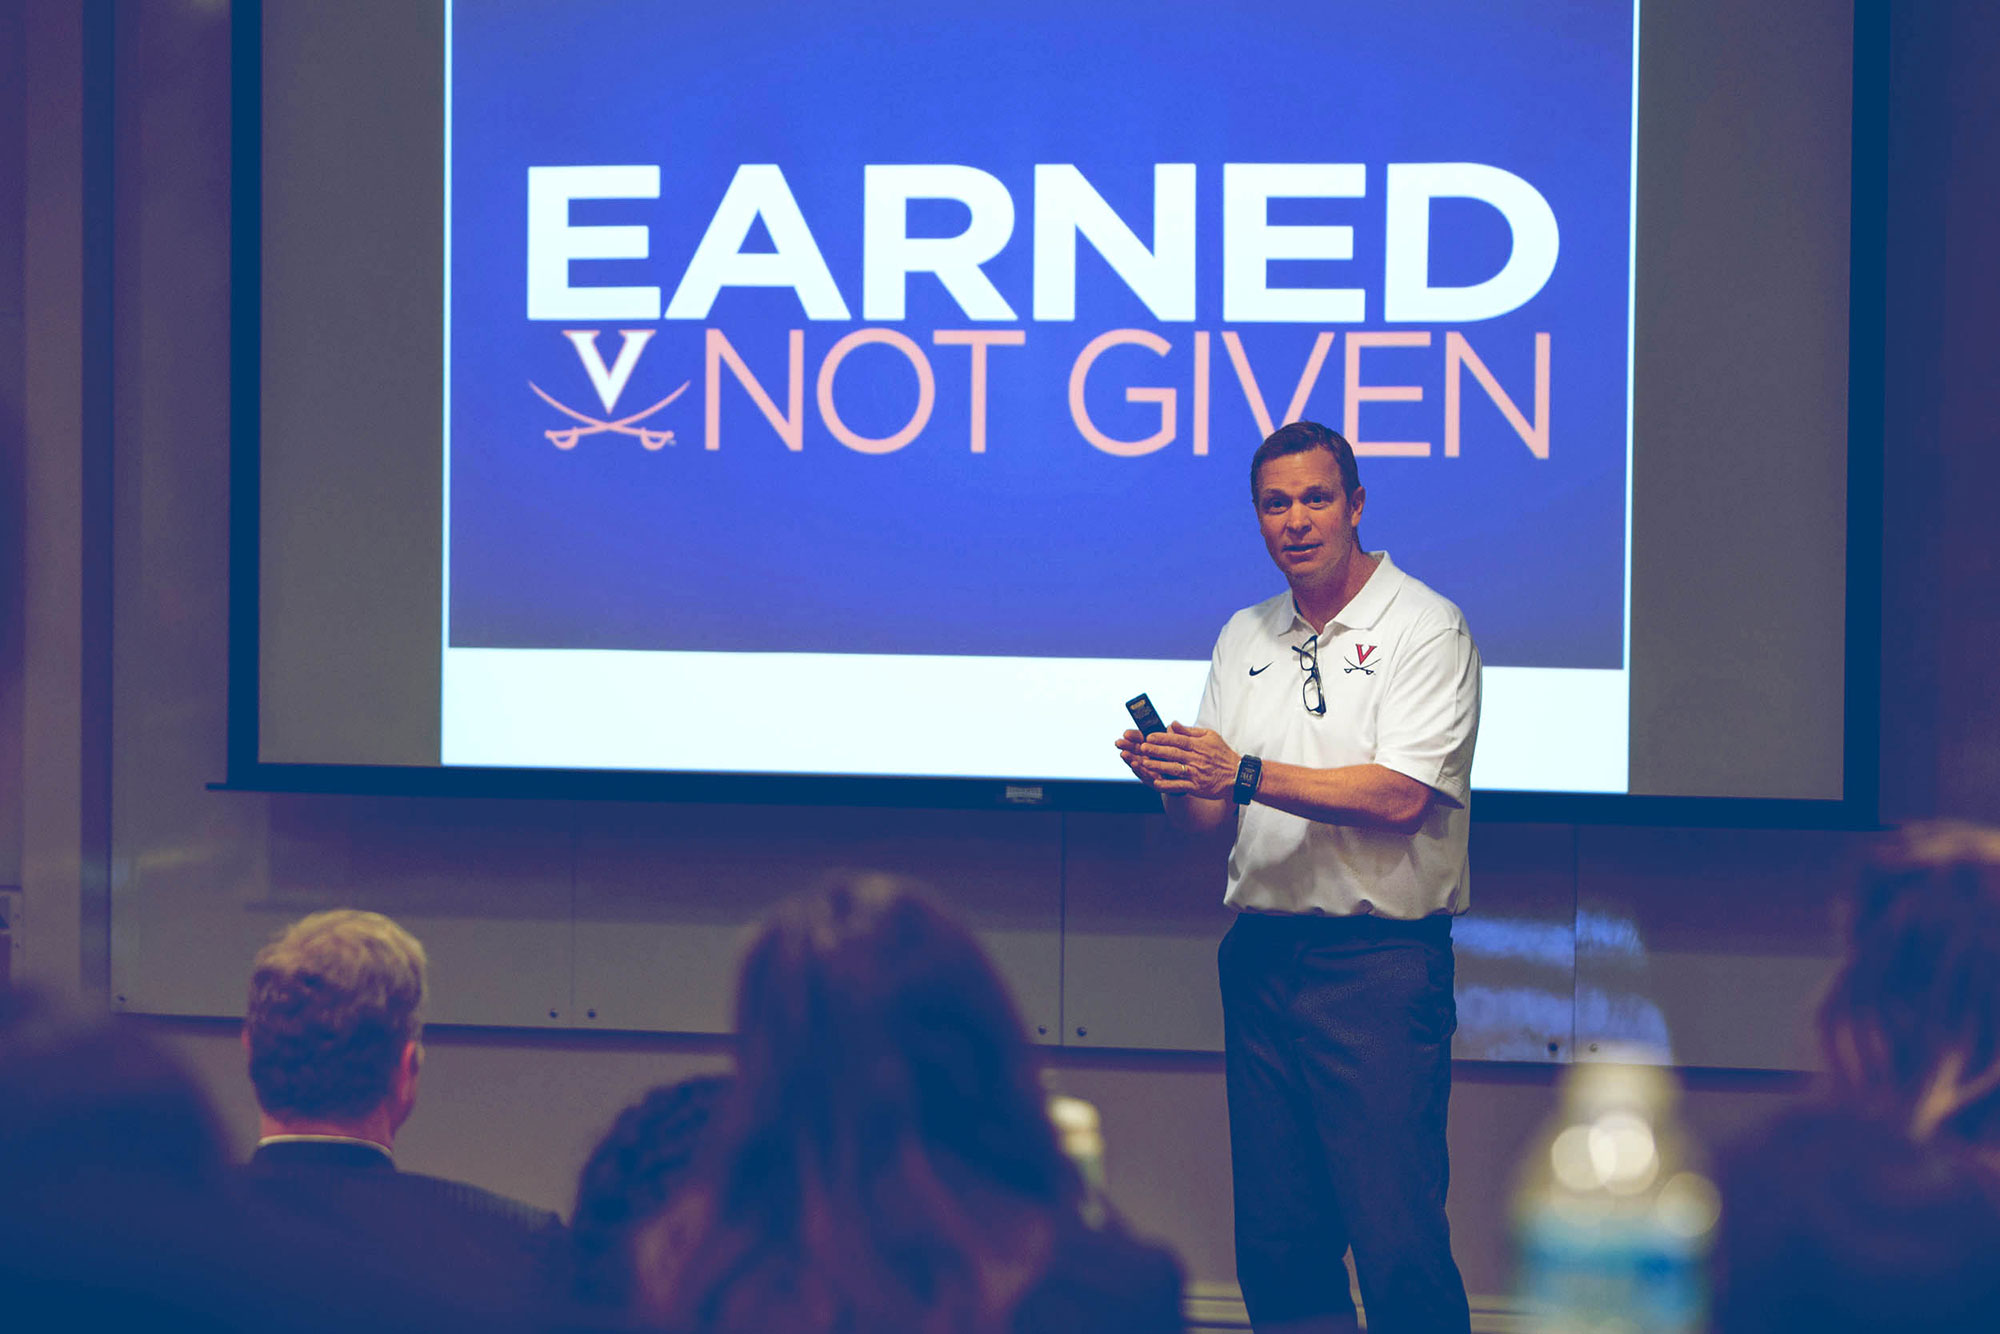 Mendenhall said that his UVA players are buying into his approach, despite its rigorous mental and physical demands.